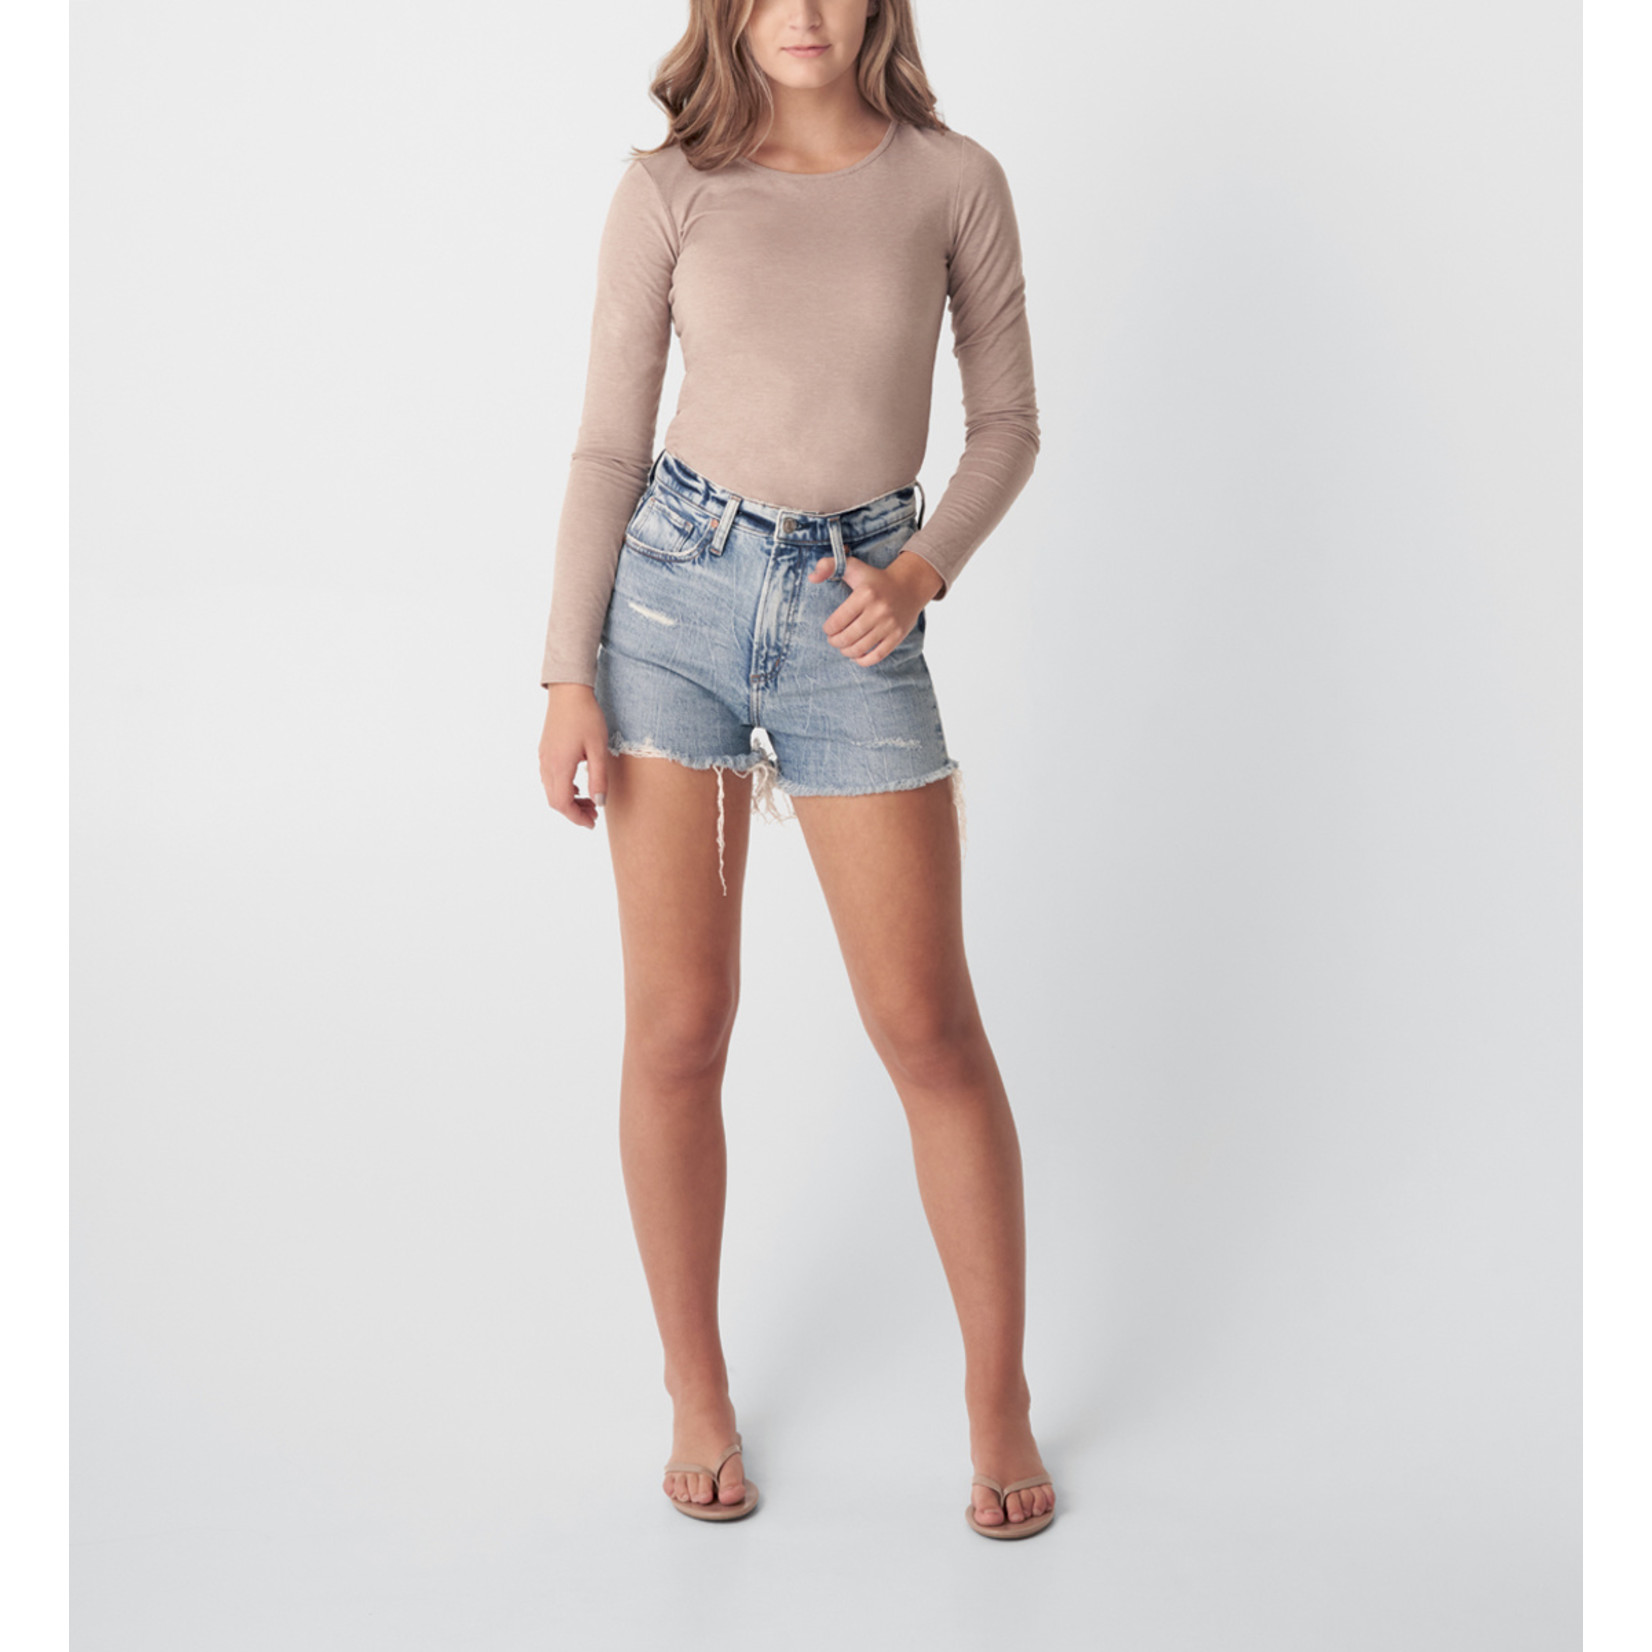 SILVER HIGHLY DESIRABLE HIGH RISE SHORT